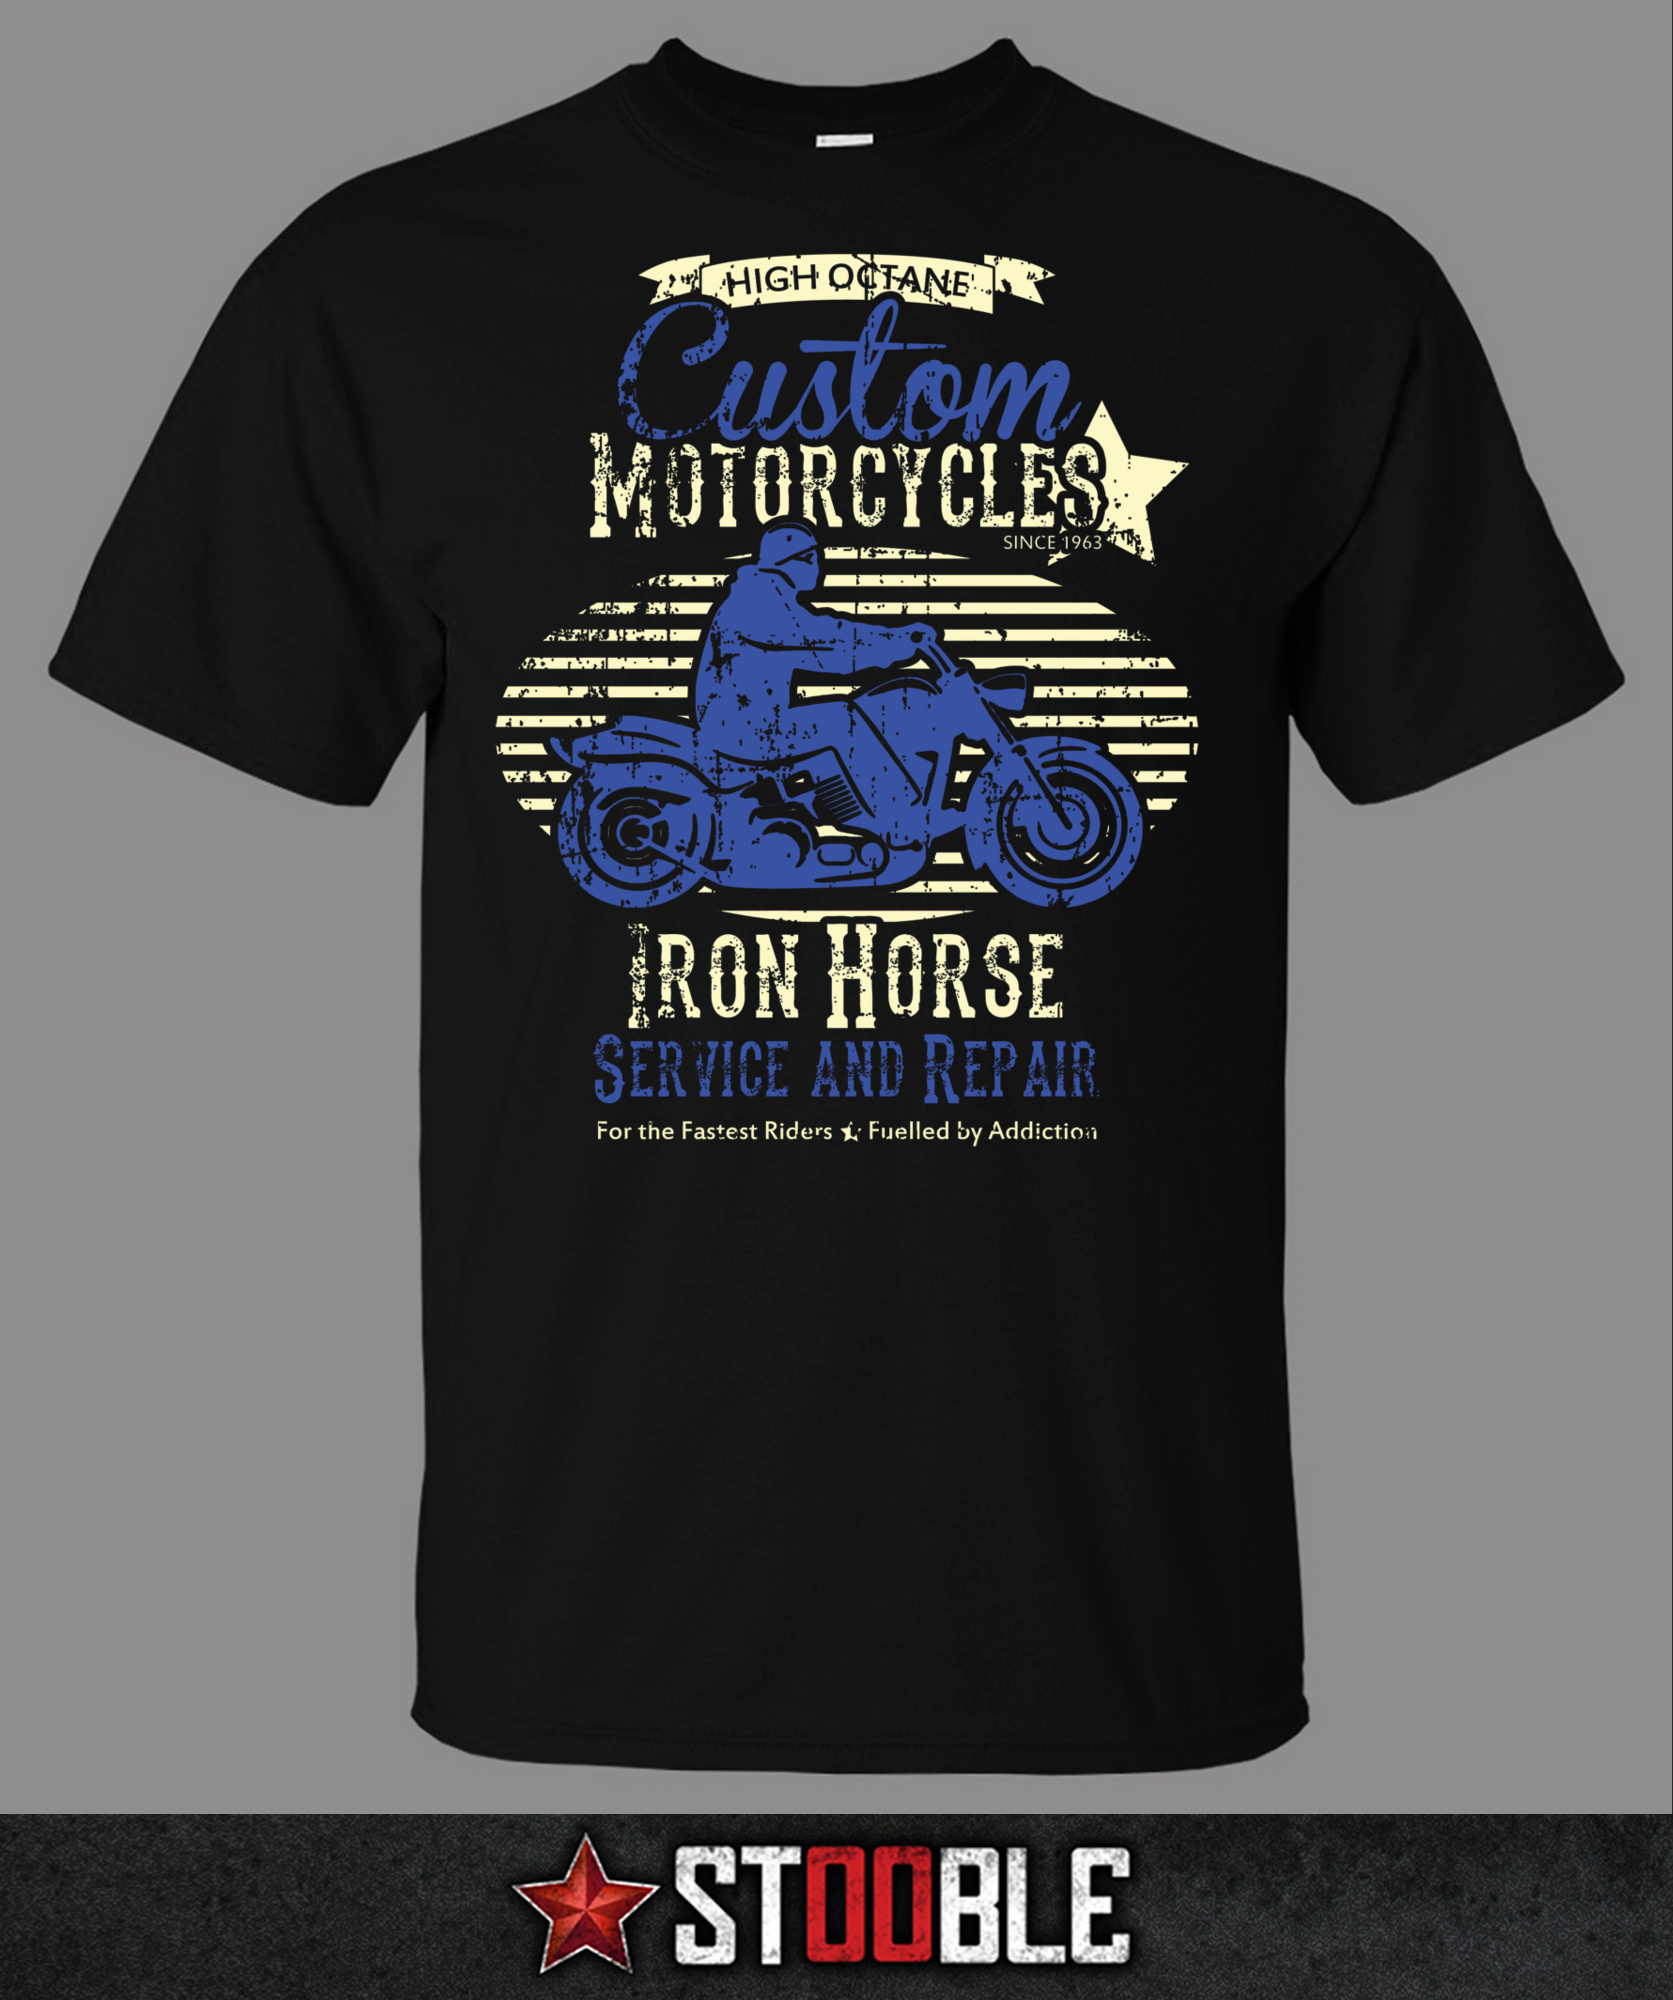 Custom motorcycles bike t shirt direct from stockist ebay for How to design and sell t shirts